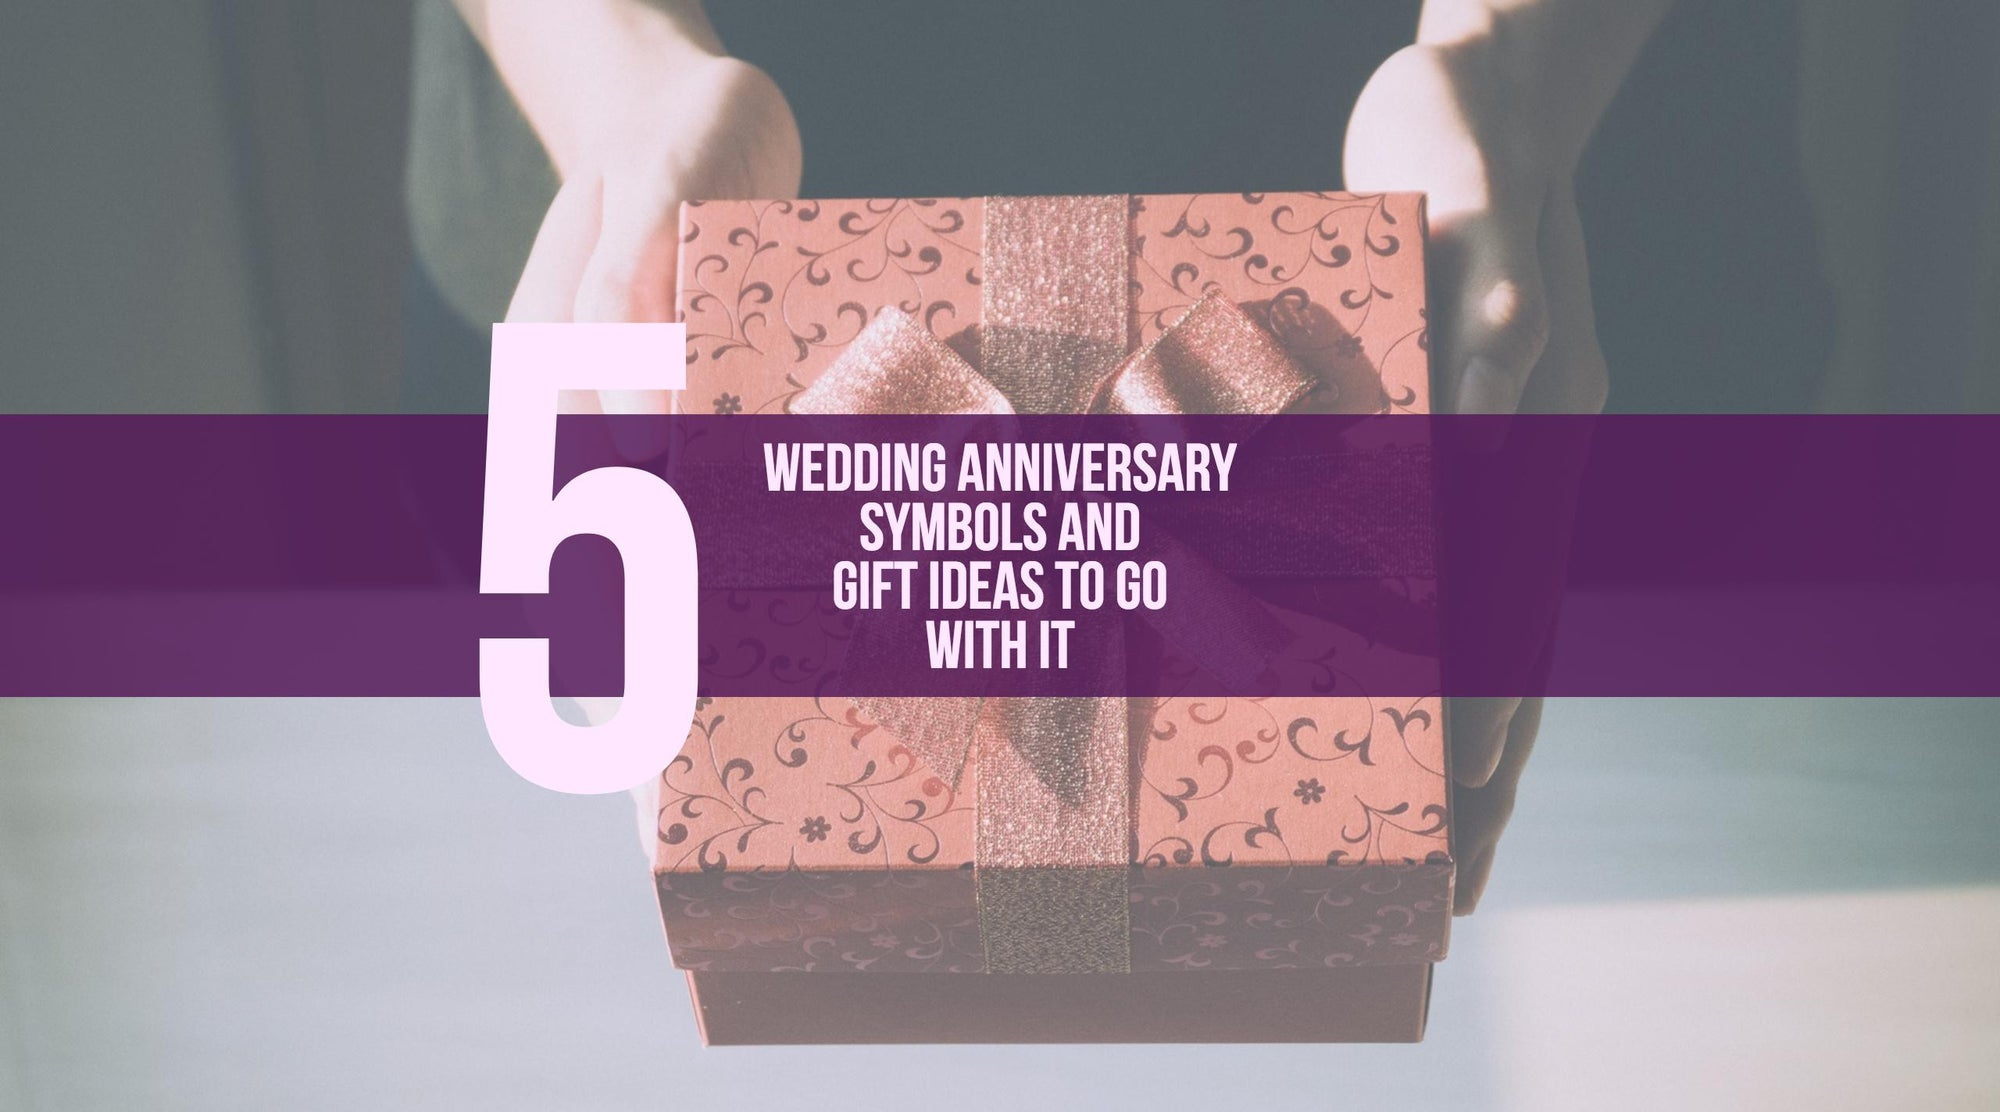 5 Wedding Anniversary Symbols and Gift Ideas to Go with It